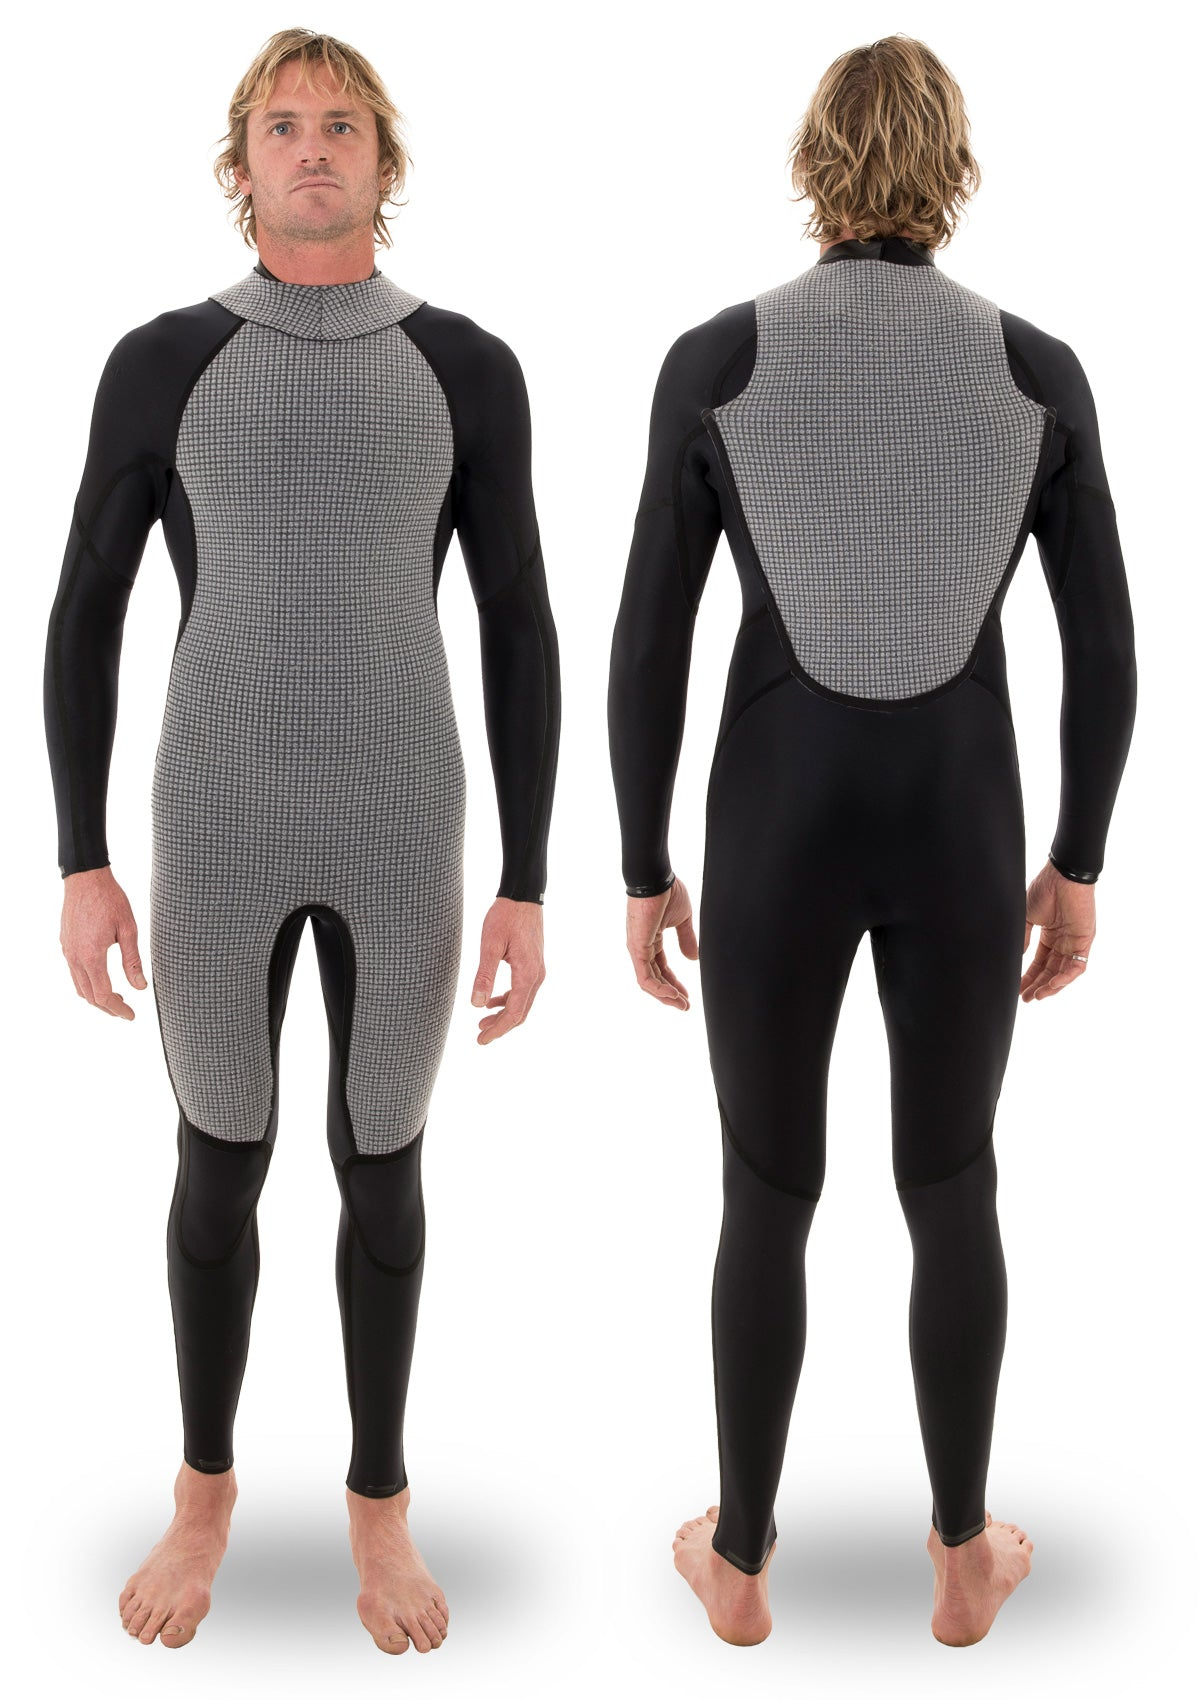 needessentials 3/2 thermal back zip wetsuit laurie towner surfing winter